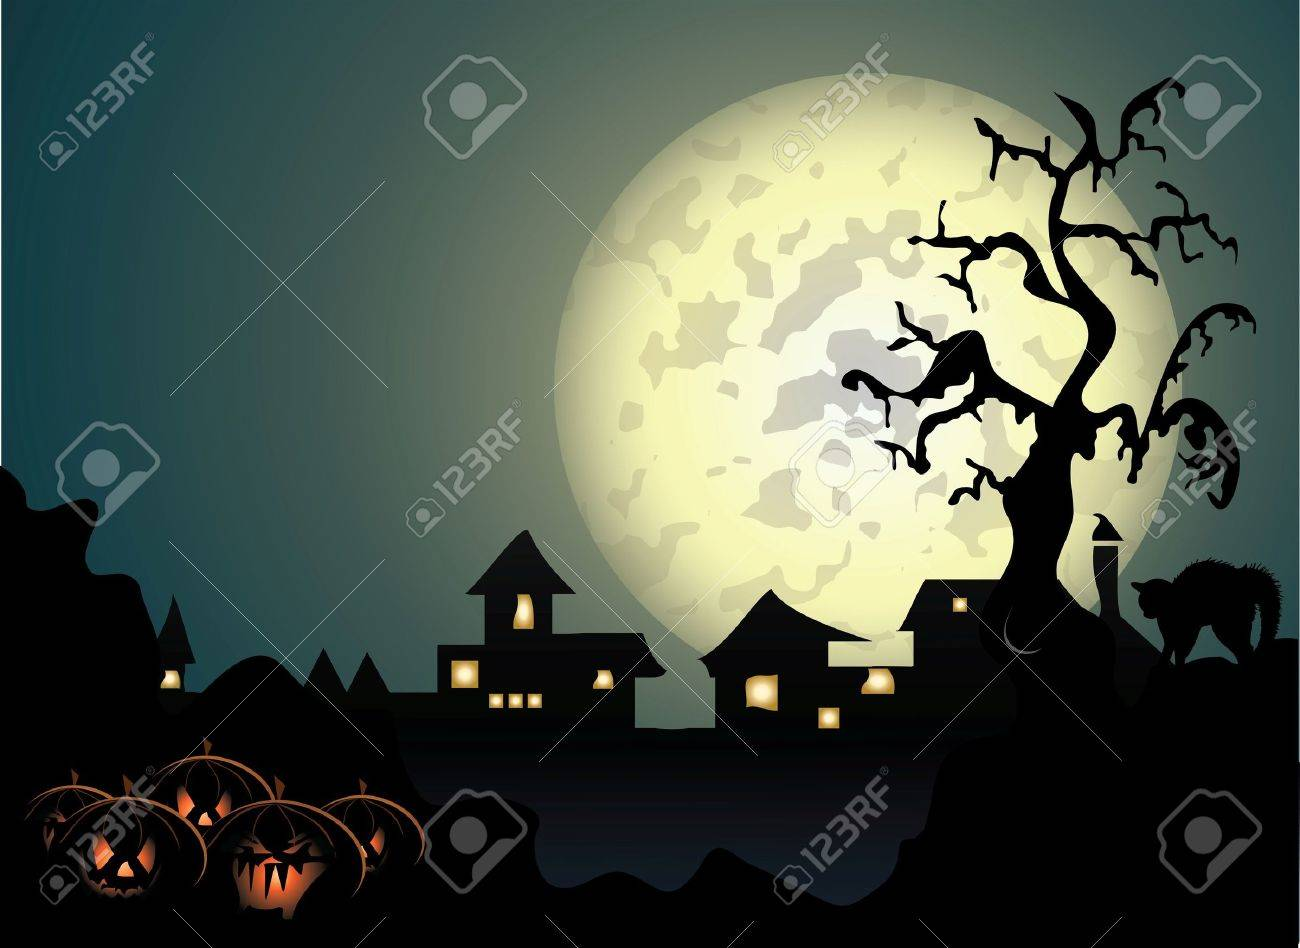 Halloween background with spooky tree and cat in editable   format Stock Vector - 7920619